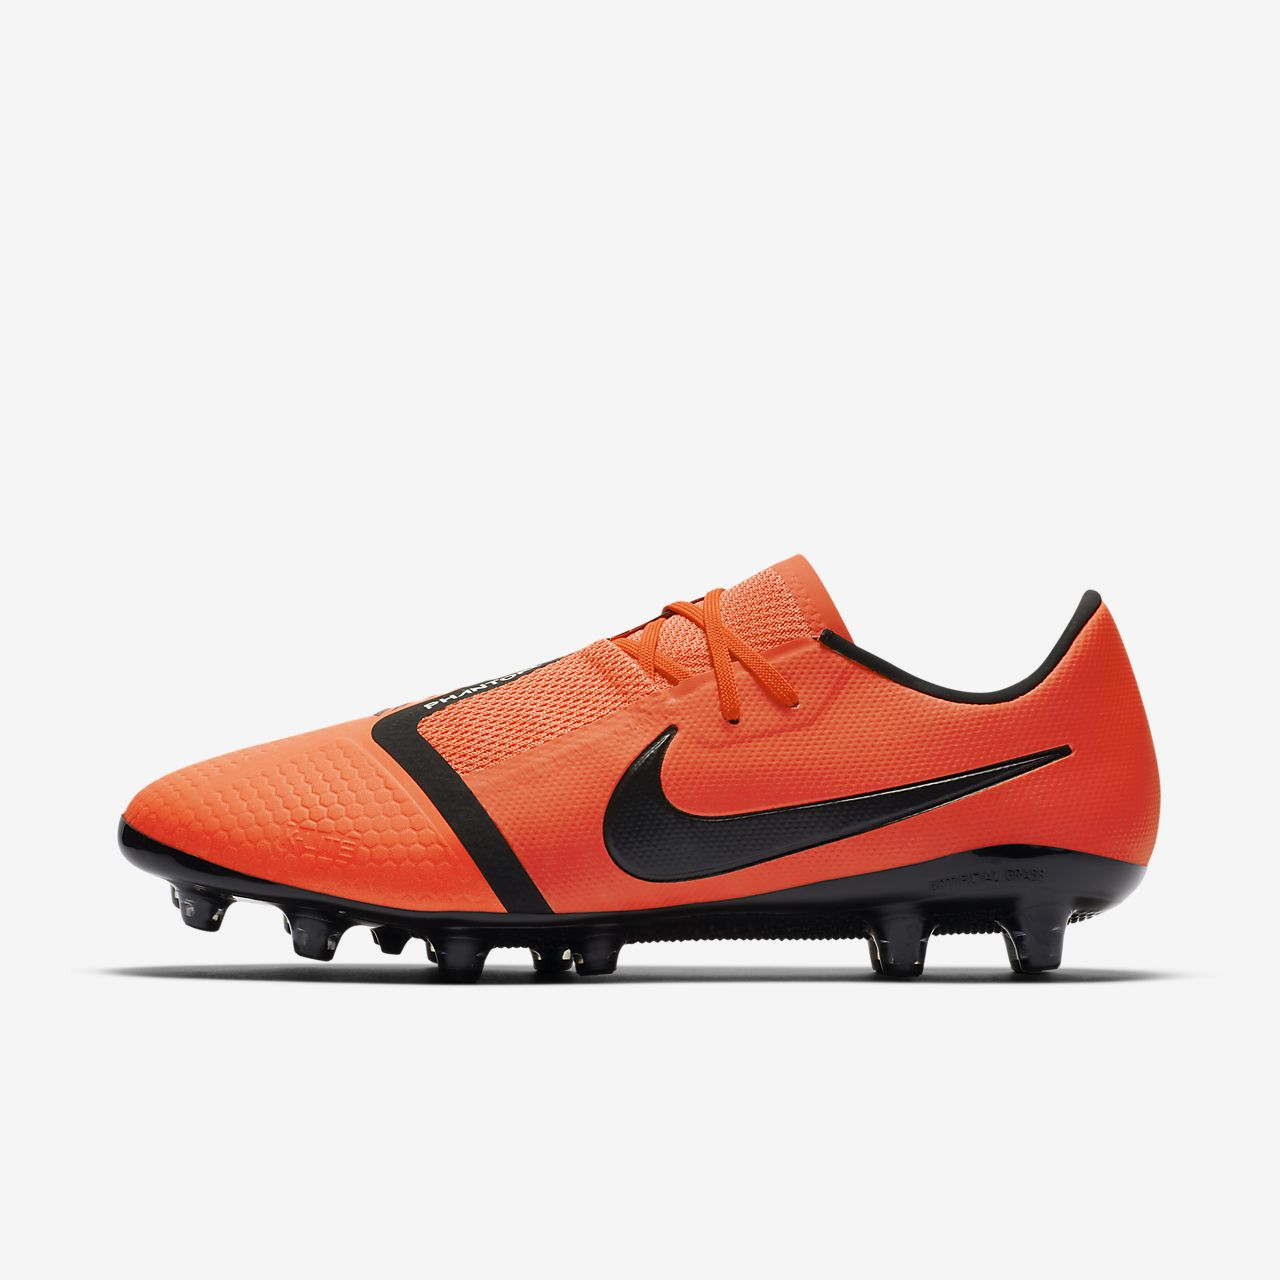 Nike Phantom Venom Pro AG-Pro Artificial-Grass Football Boot